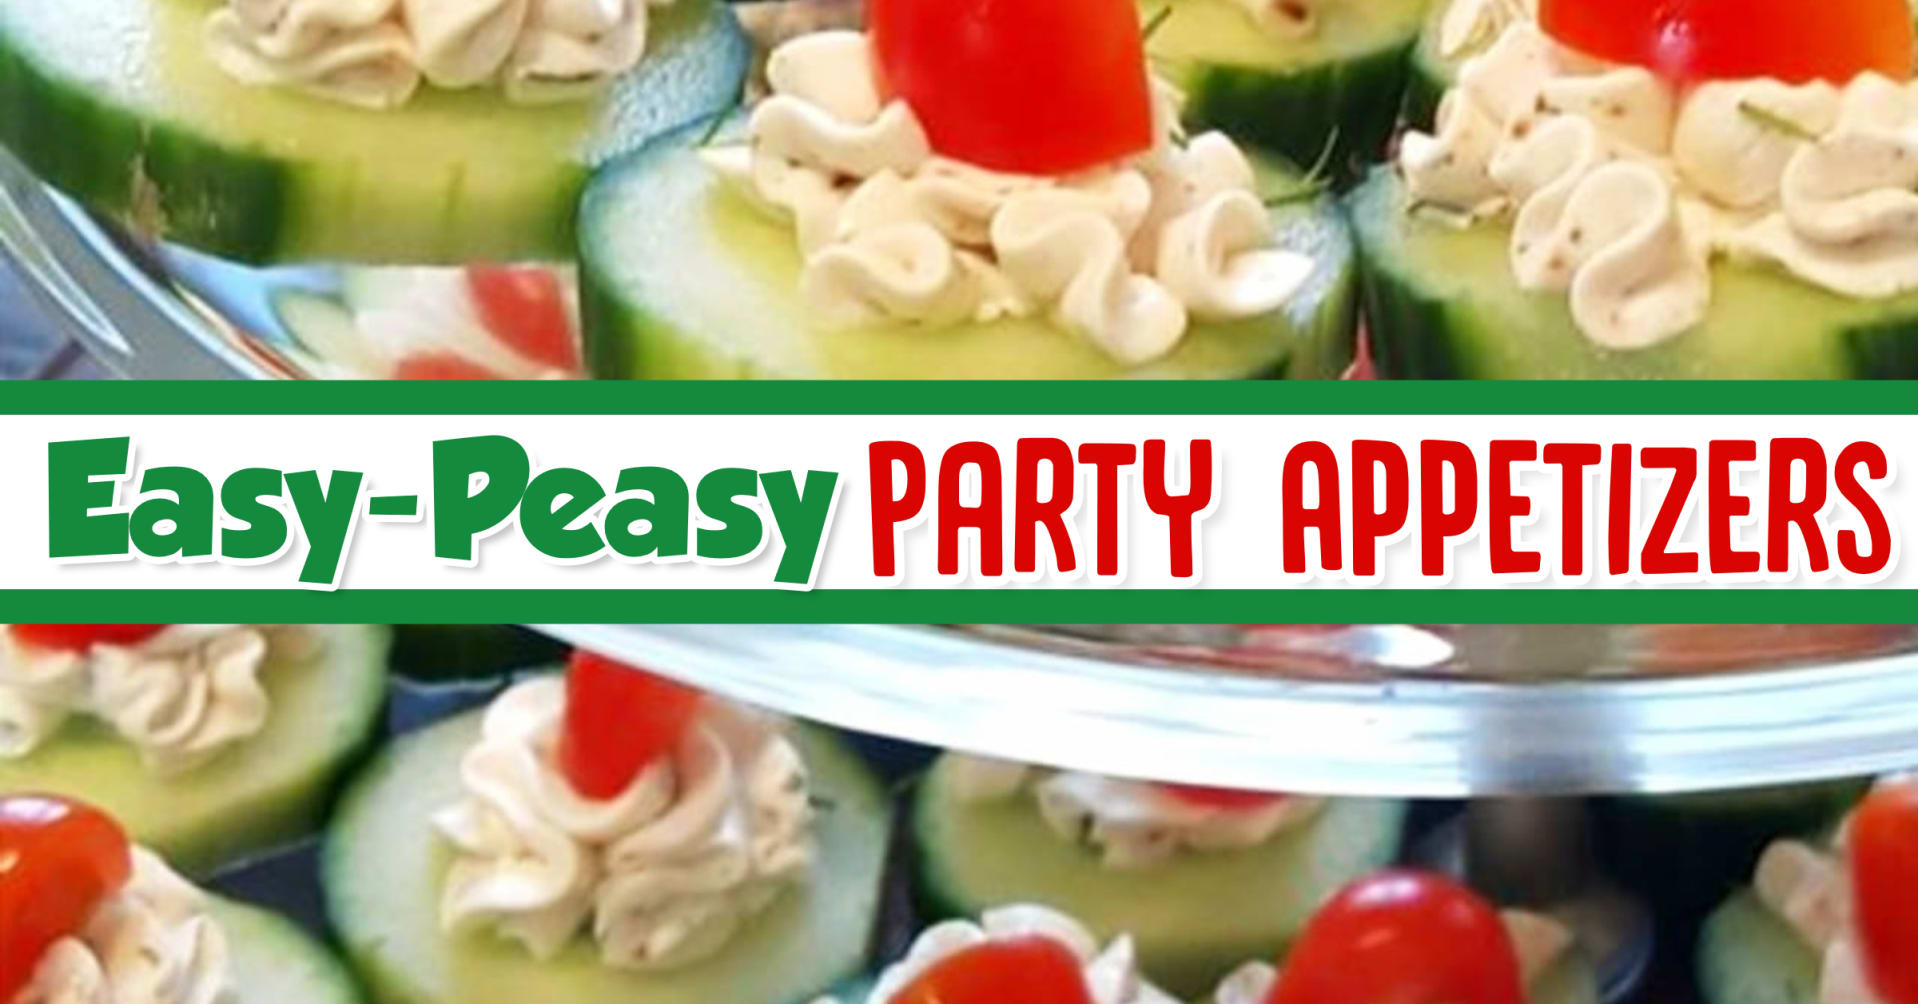 simple and easy party appetizers ideas that are crowd pleasers - simple appetizers ideas for fun with friends, summer cookout, holiday party, summer block party, super bowl or ANY party